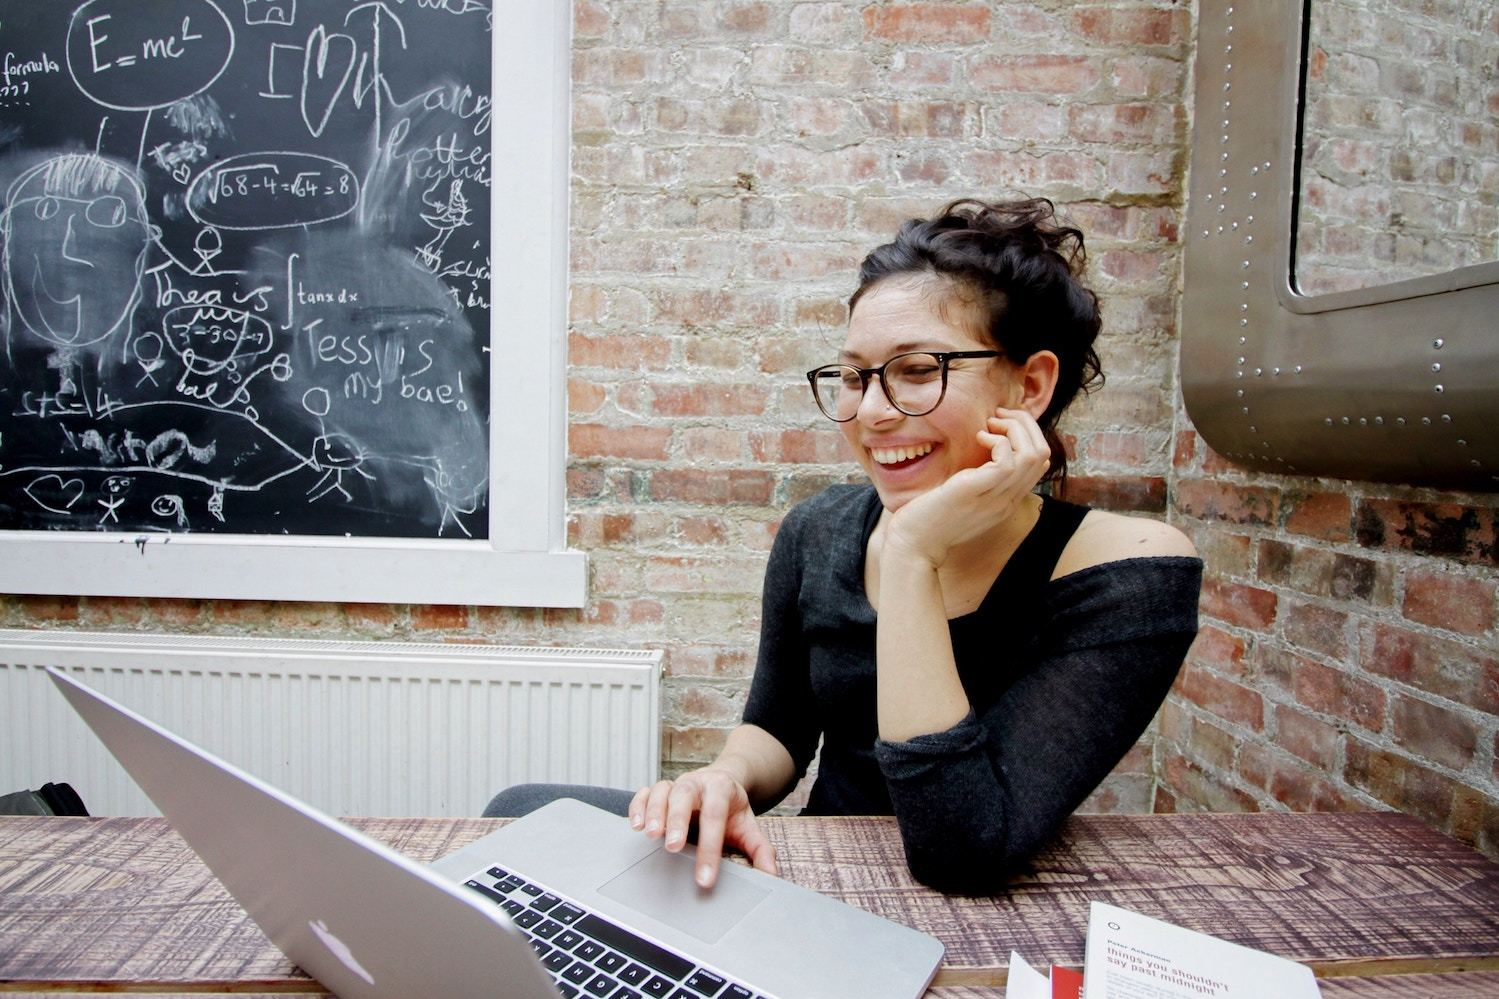 A young woman in glasses laughs while working on her laptop